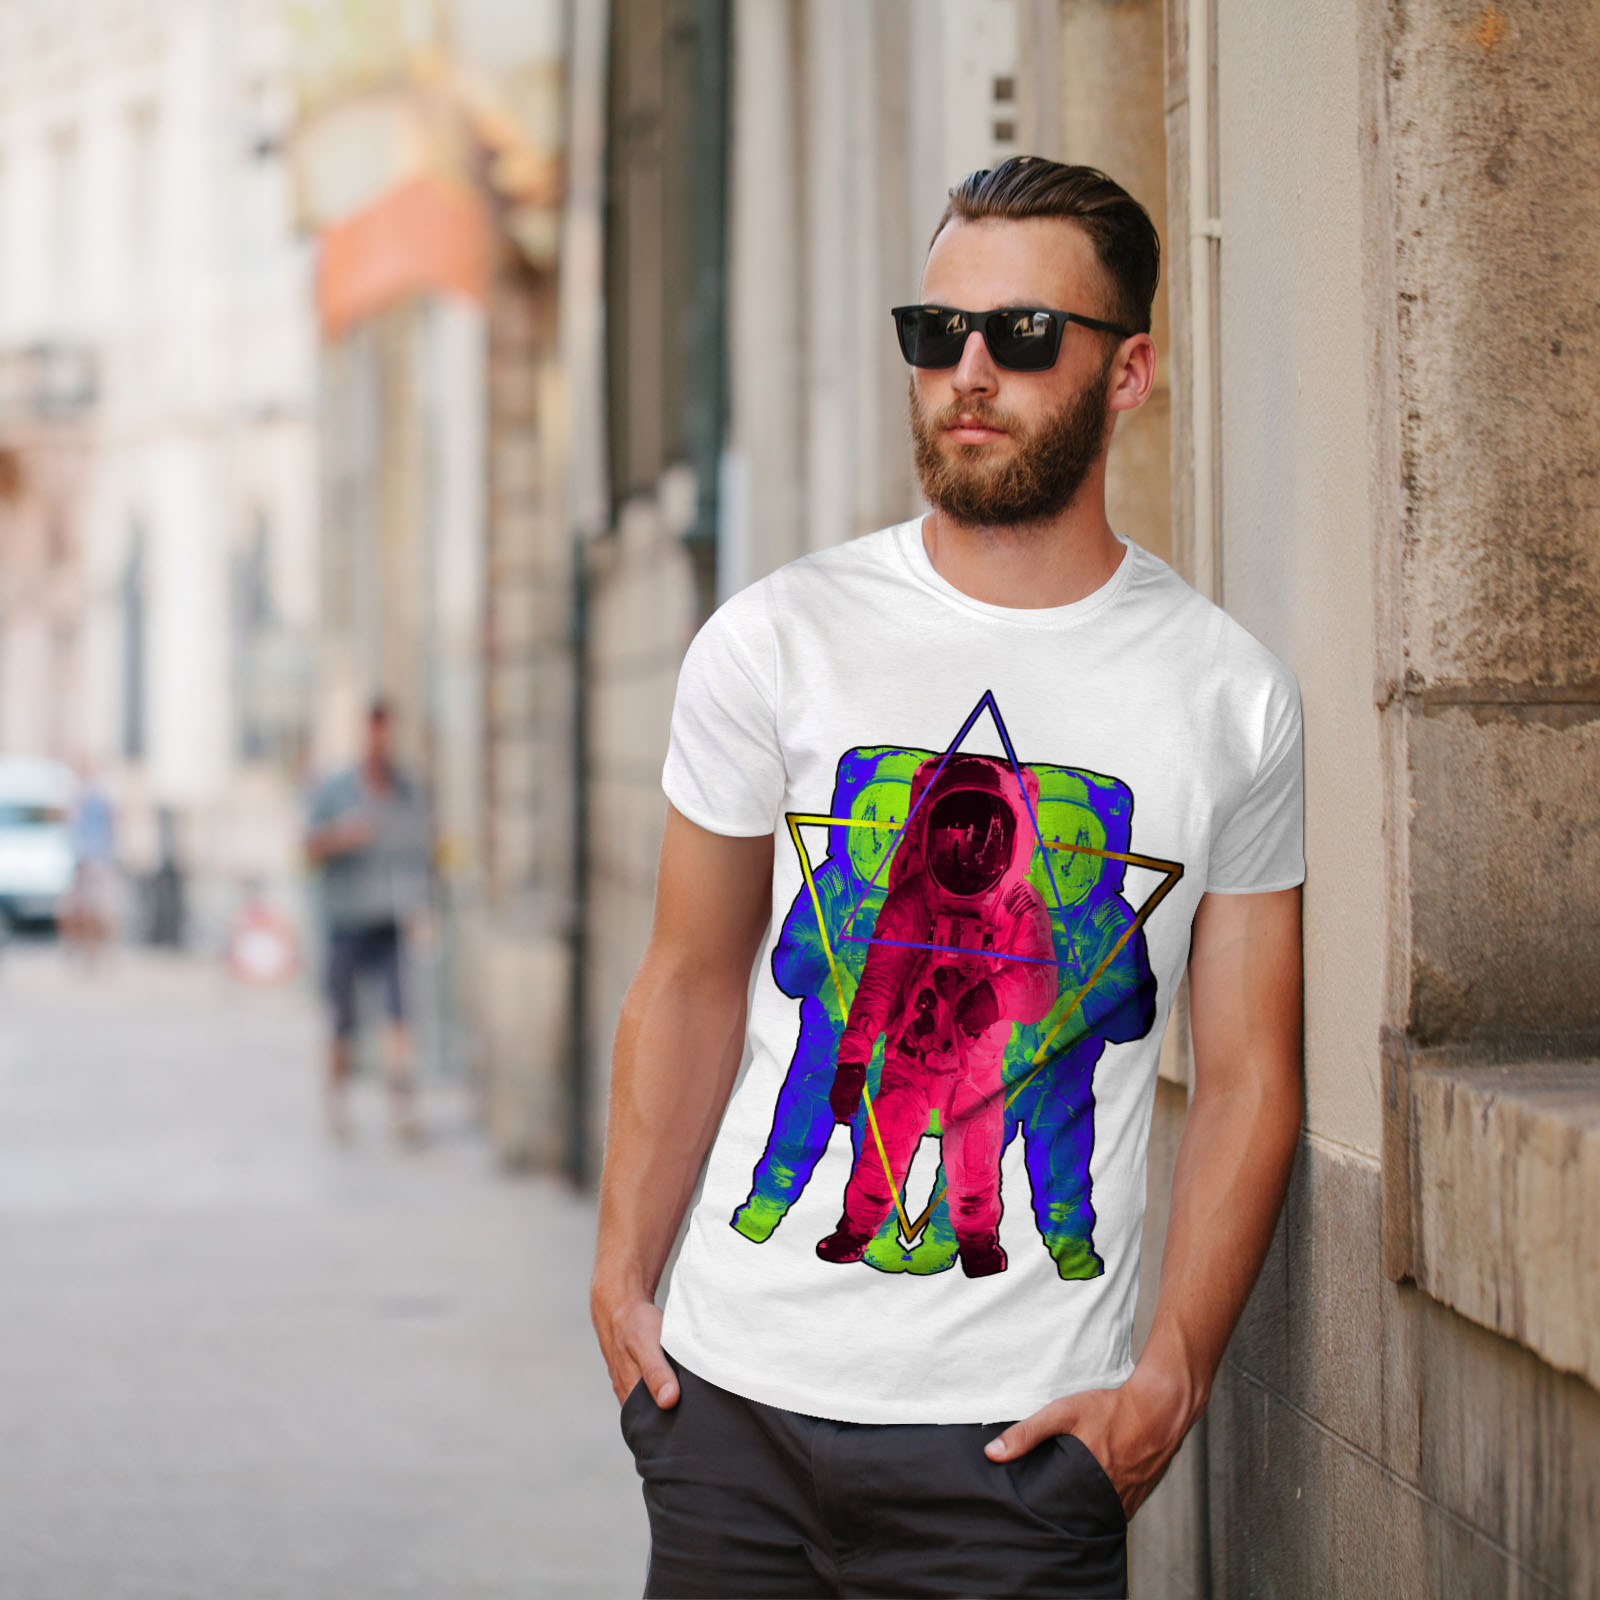 Wellcoda-Psychedelic-Astronaut-Mens-T-shirt-Star-Graphic-Design-Printed-Tee thumbnail 11